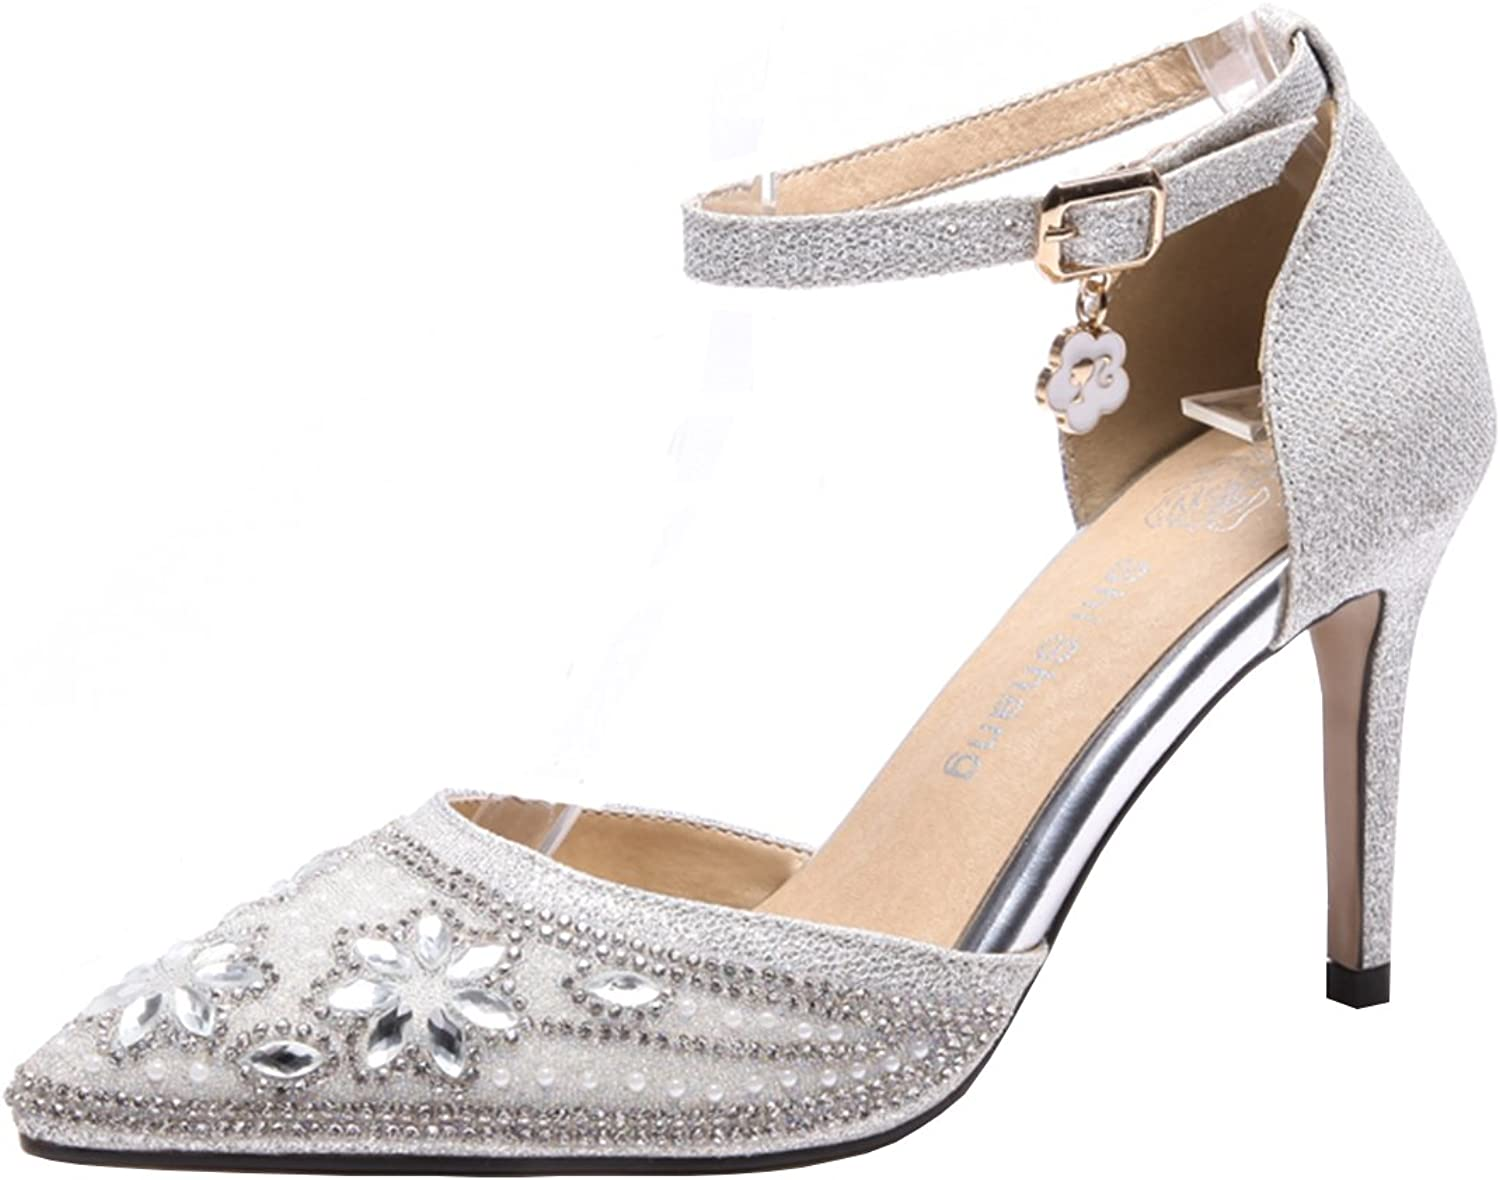 Artfaerie Women's High Heels Ankle Strap Pumps Wedding Bridal Glitter Court shoes with Rhinestones